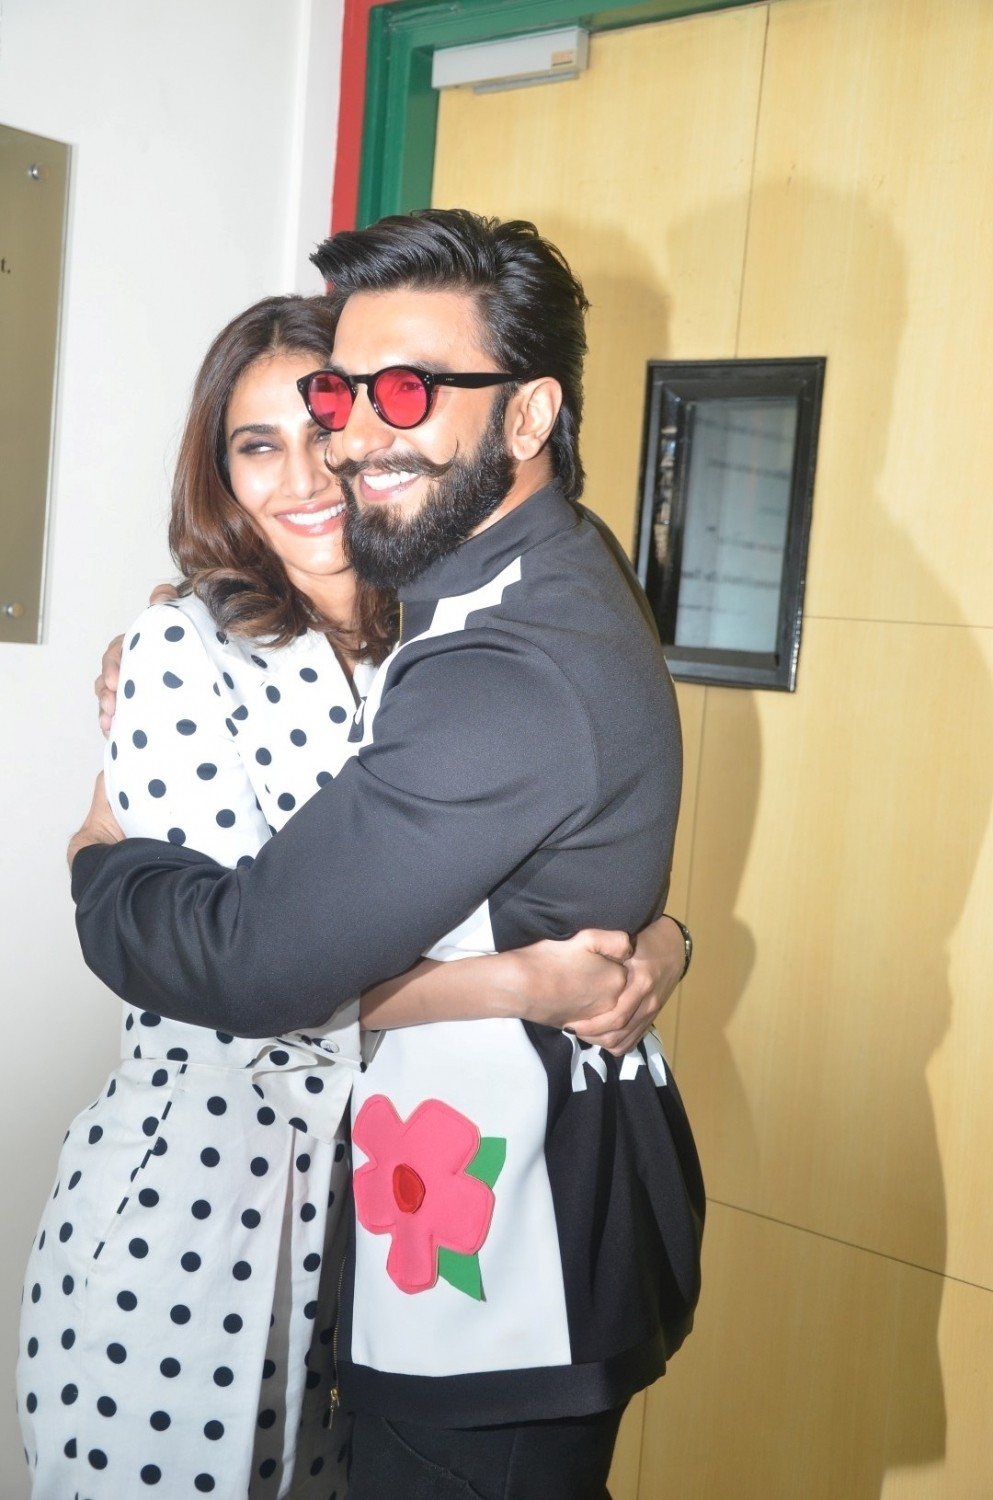 Ranveer Singh and Veena Kapoor,Ranveer Singh,Veena Kapoor,Befikre,Befikre promotion,Befikre movie promotion,Befikre promotion on Radio Mirchi studio,Befikre movie promotion on Radio Mirchi studio,Radio Mirchi studio,Befikre pics,Befikre images,Befikre pho